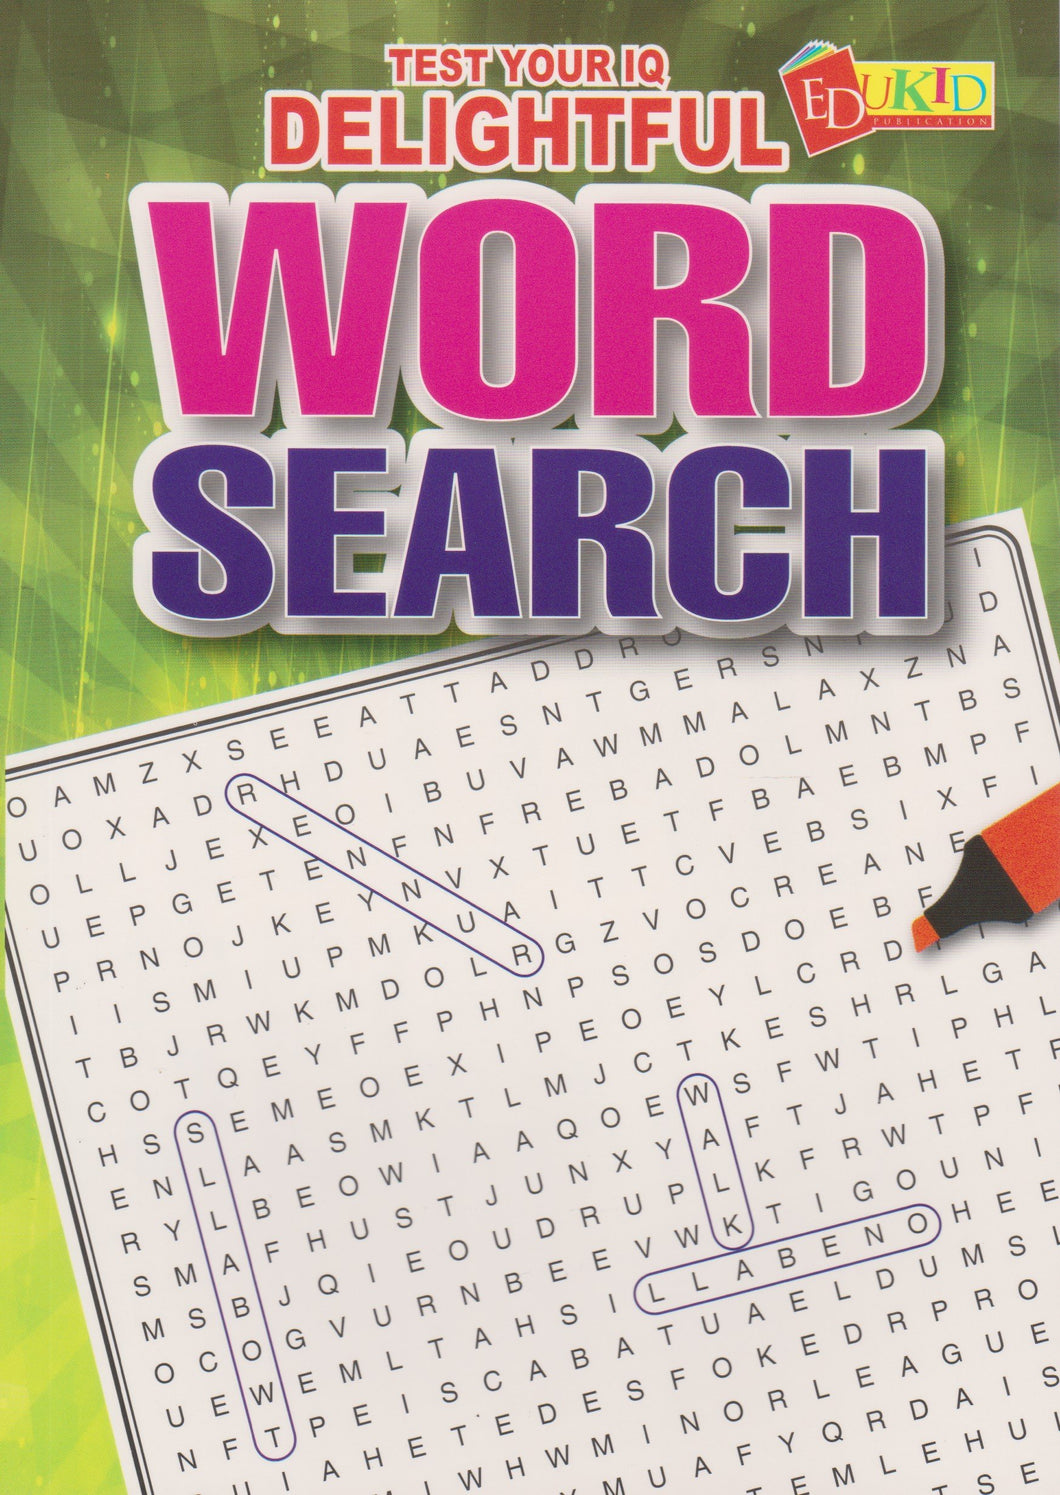 Edukid: Test Your IQ: Delightful Word Search